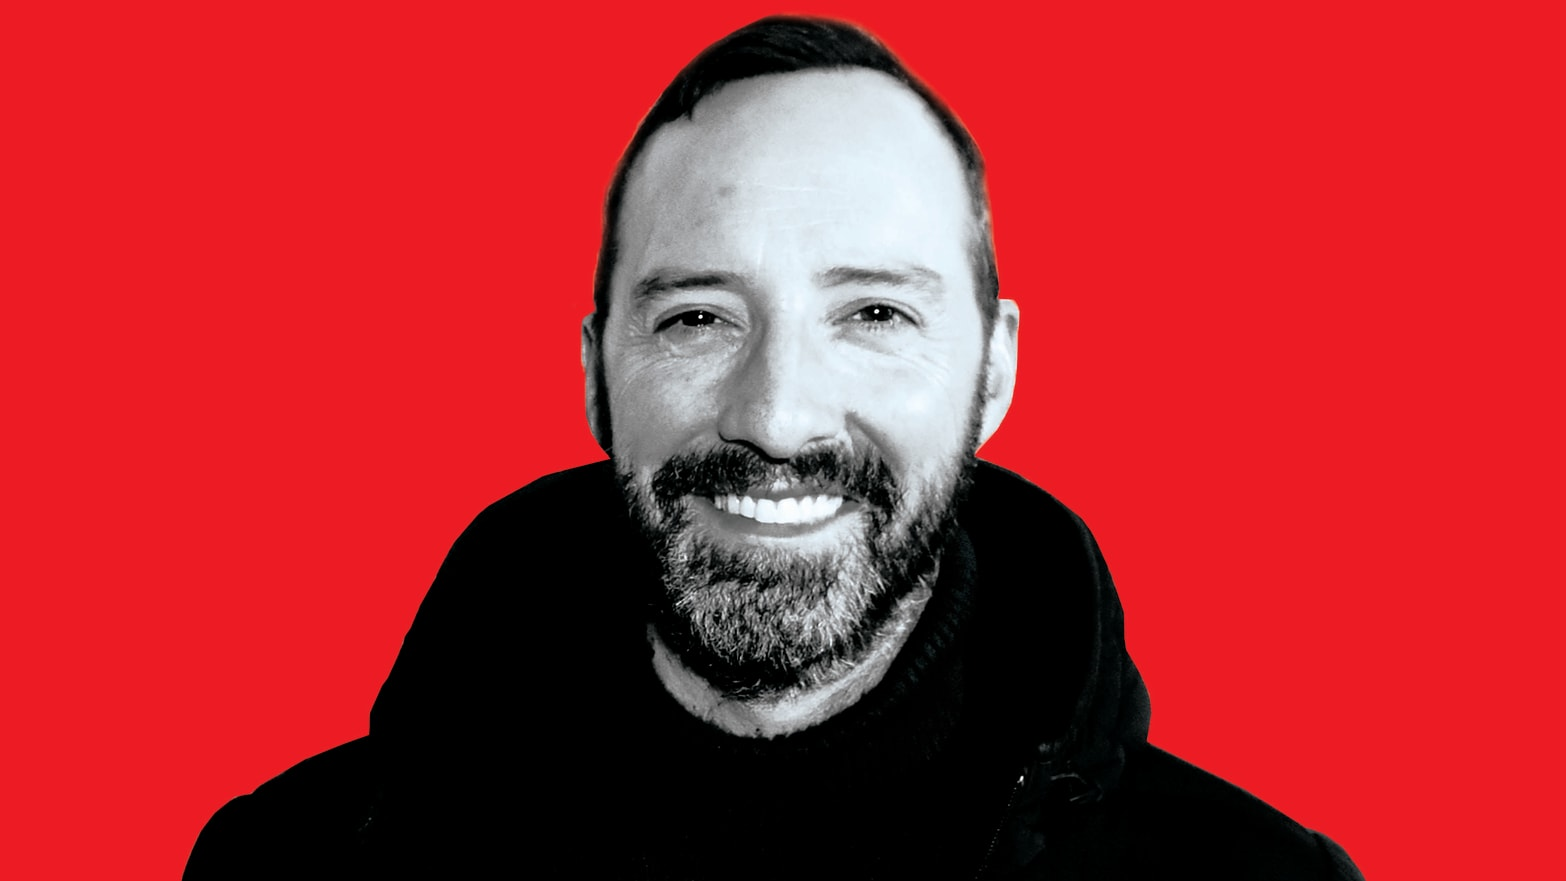 'The Last Laugh' Podcast: Tony Hale on the End of 'Veep' and 'Arrested Development'